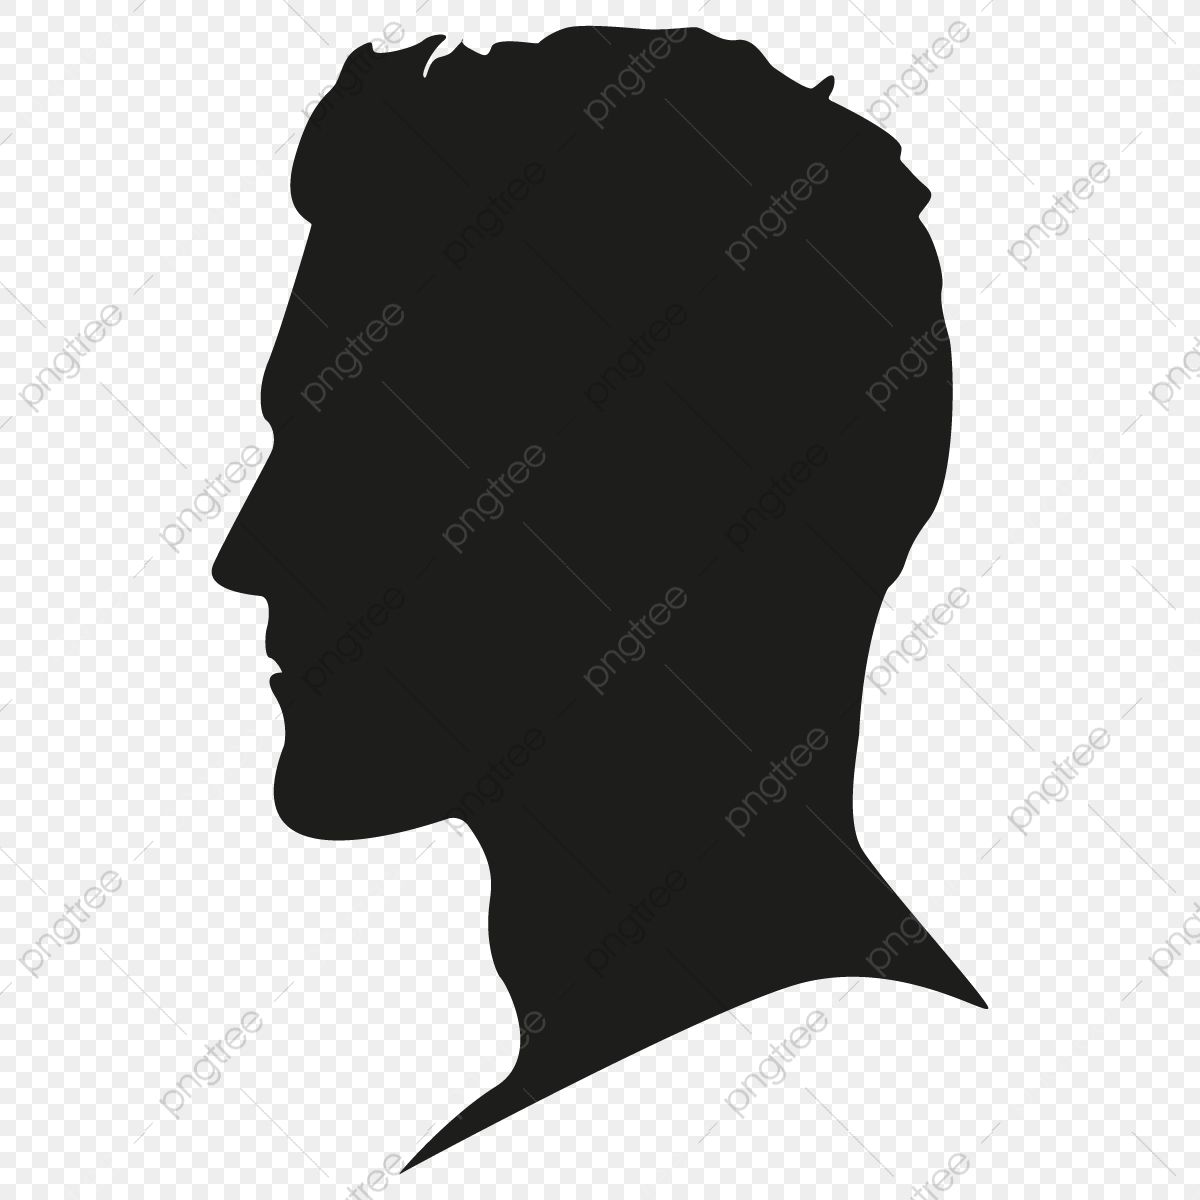 Male Silhouette Head Vector Png Free Male Silhouette Head Person Head Male Silhouette Profile Png And Vector With Transparent Background For Free Download Silhouette Head Silhouette Male Profile